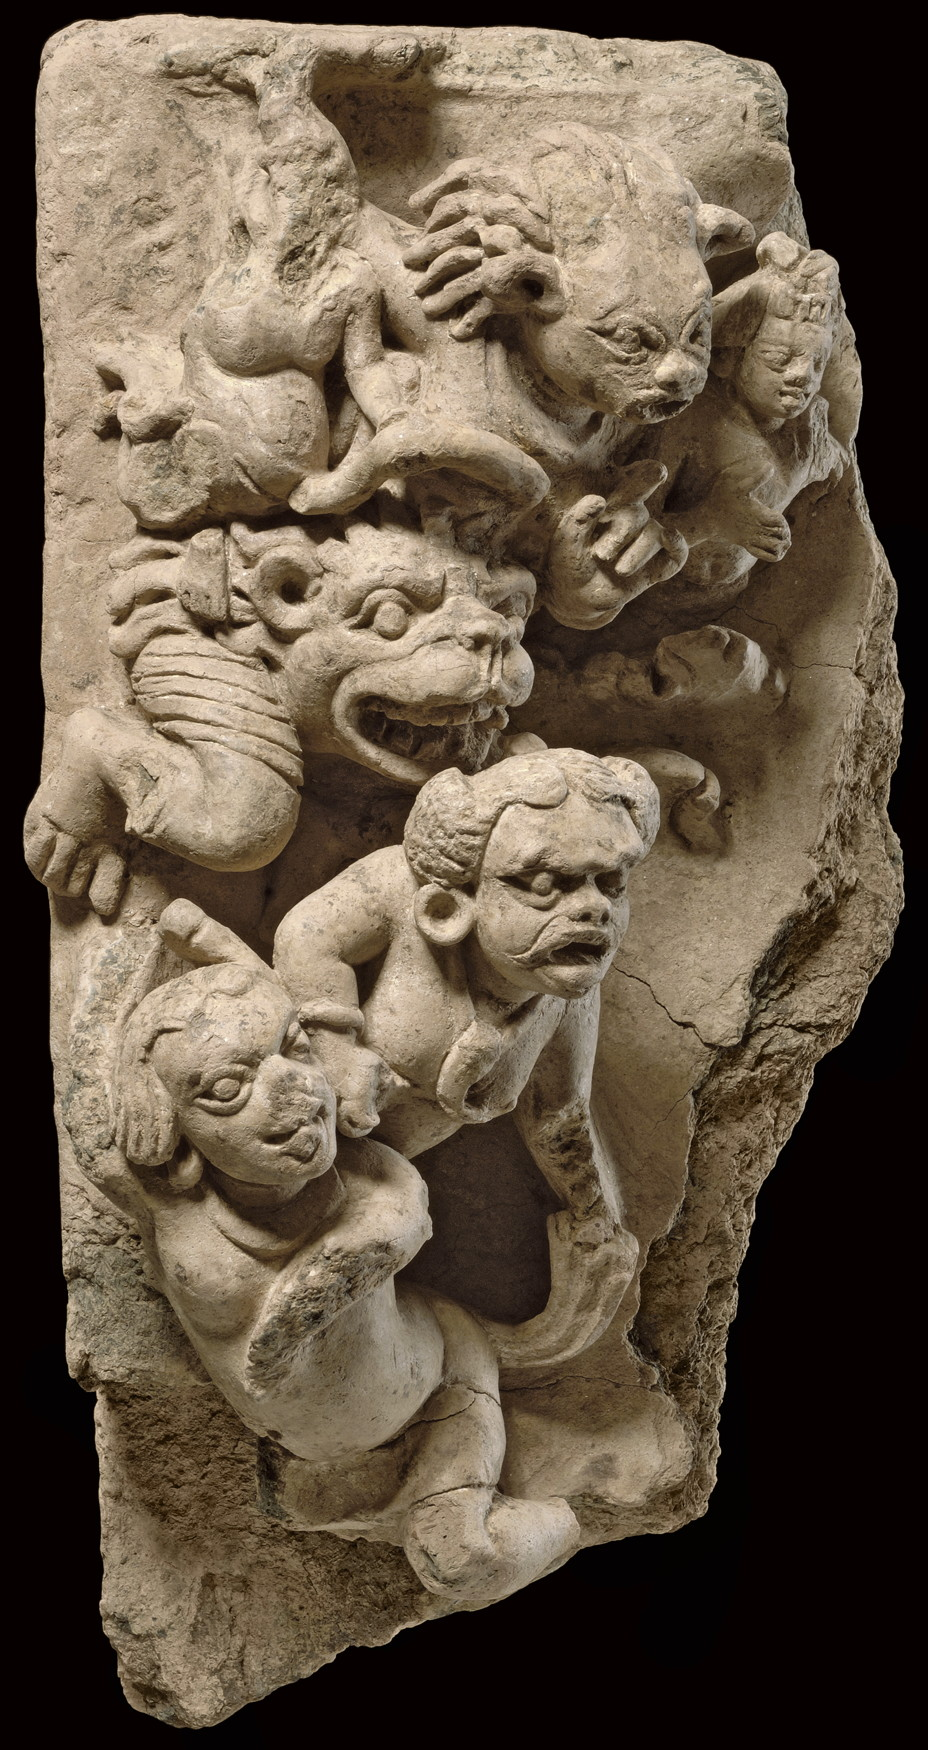 Mara's Horde, Terracotta, Eastern India, Bengal, 5th to 8th century, height 42cm, width 20.5cm